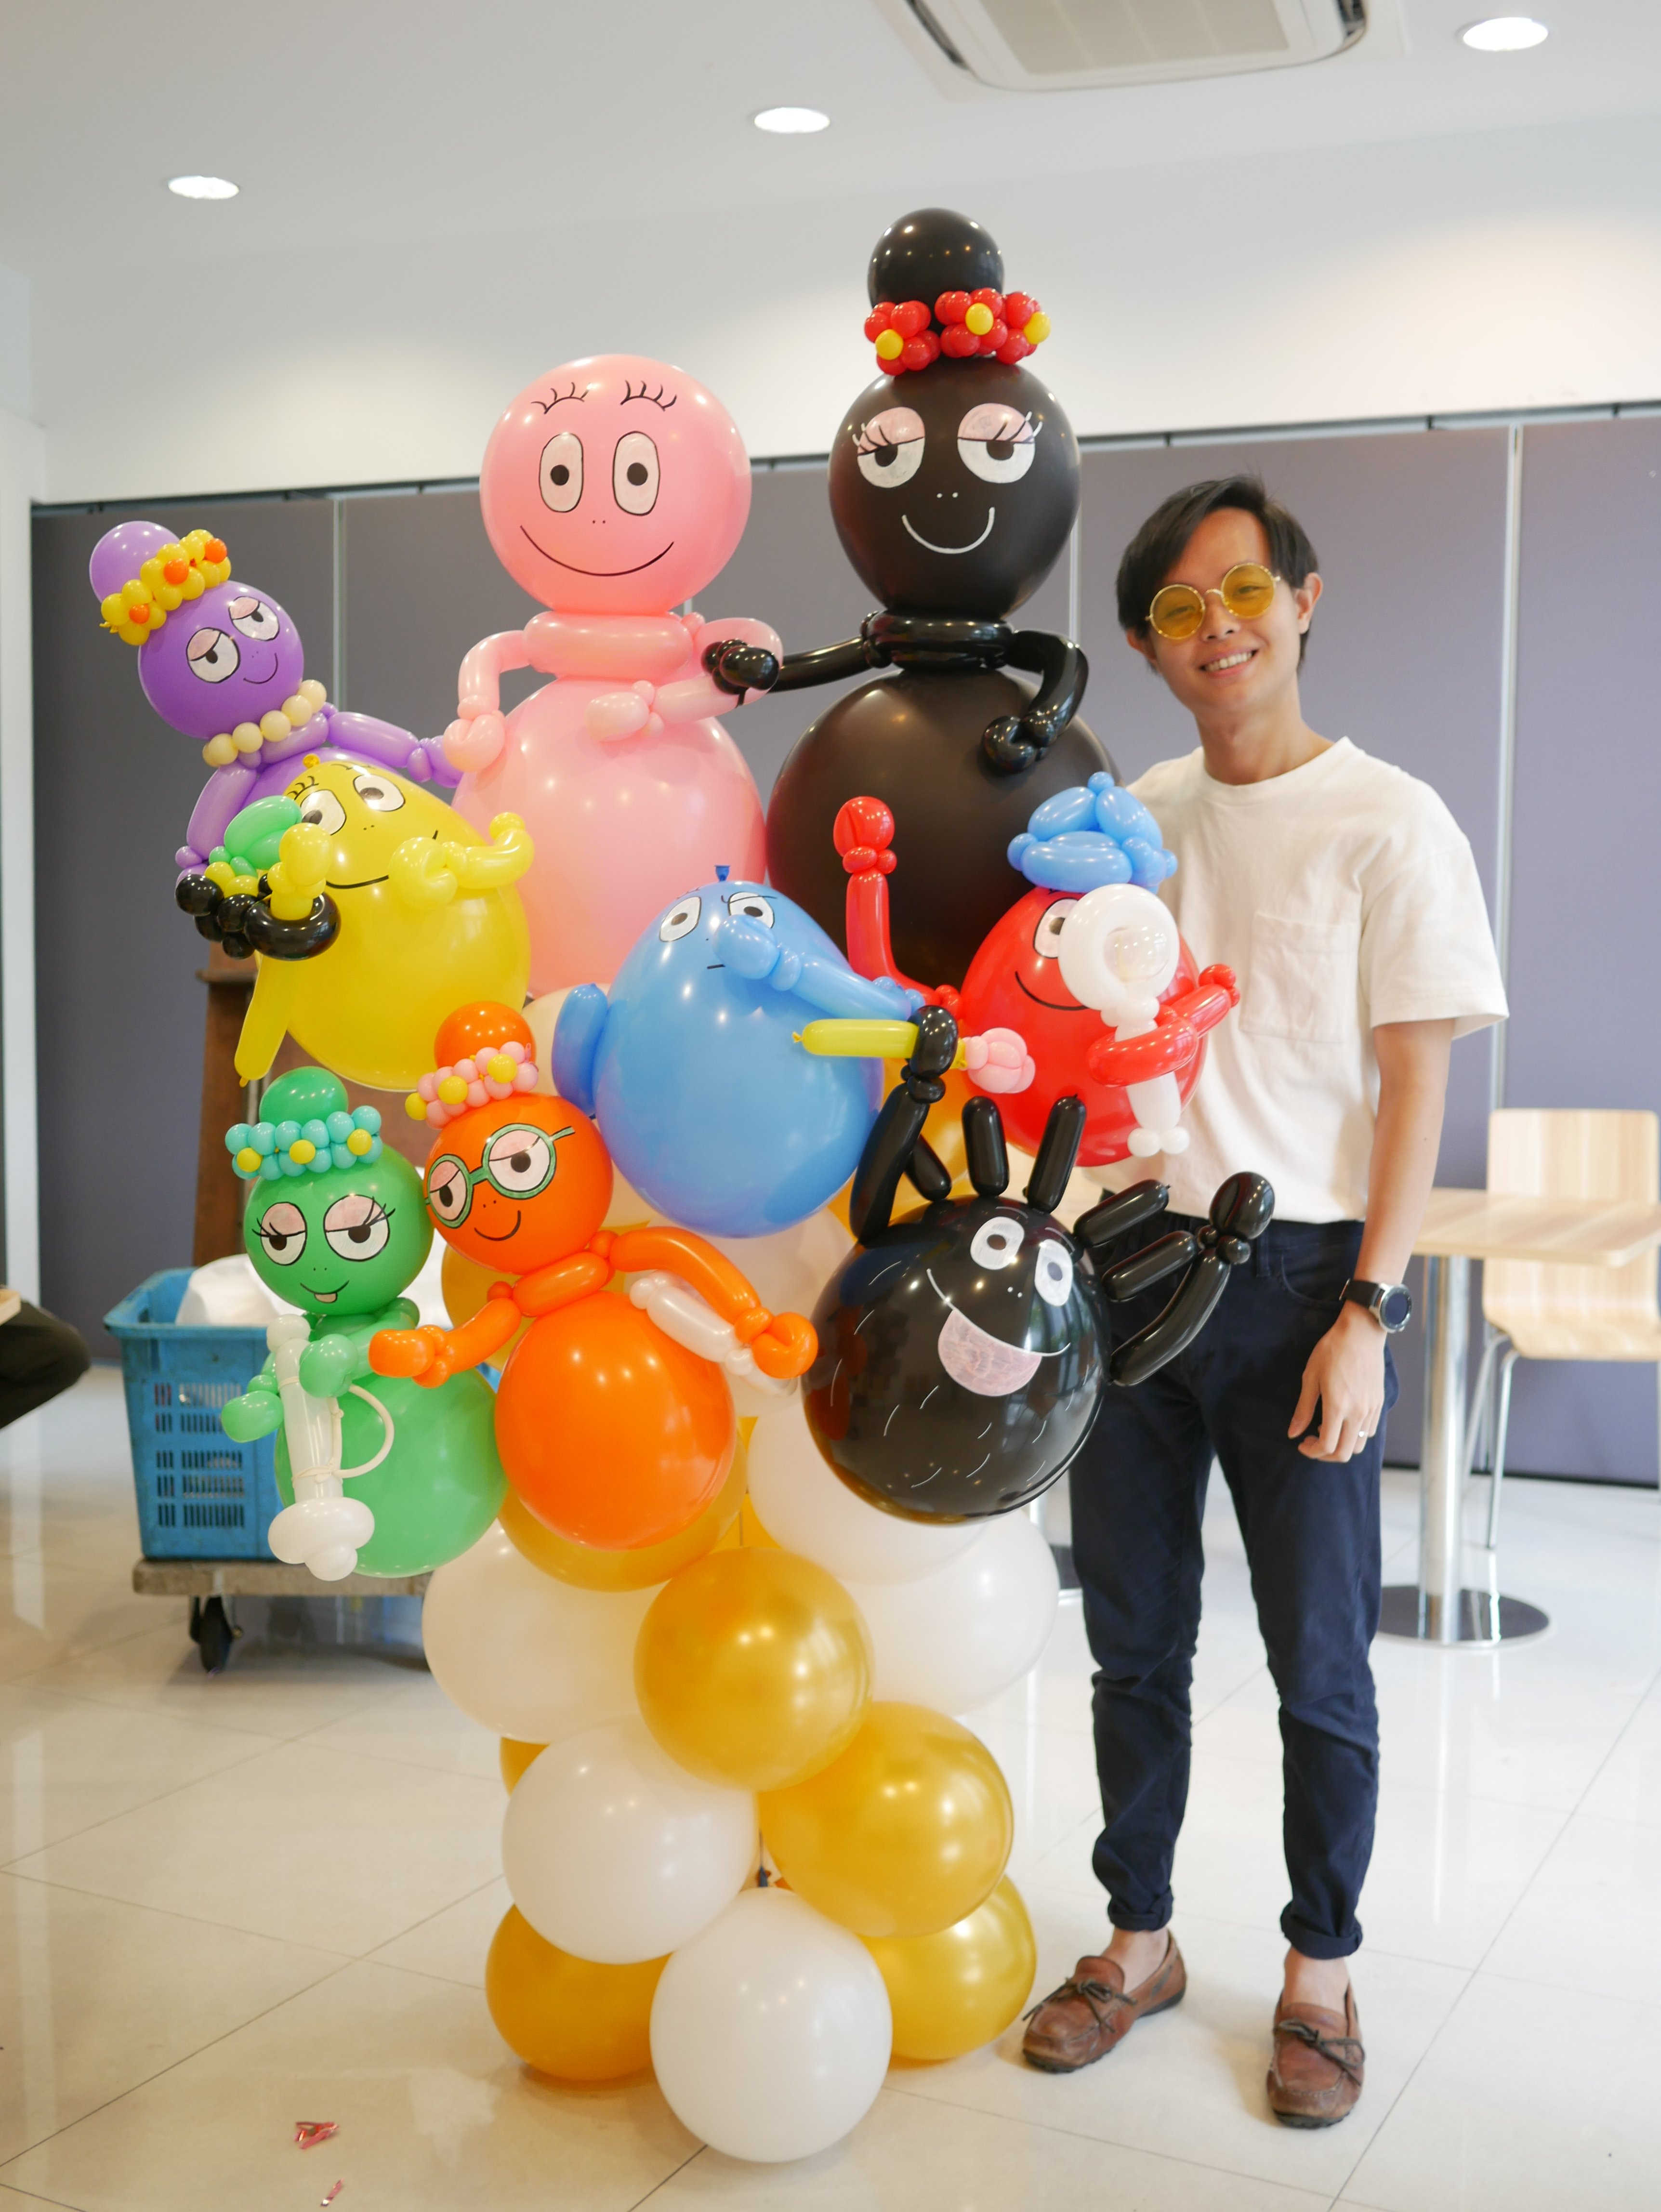 , Barbapapa, by Annette Tison | Themed Balloon Decorations, Singapore Balloon Decoration Services - Balloon Workshop and Balloon Sculpting